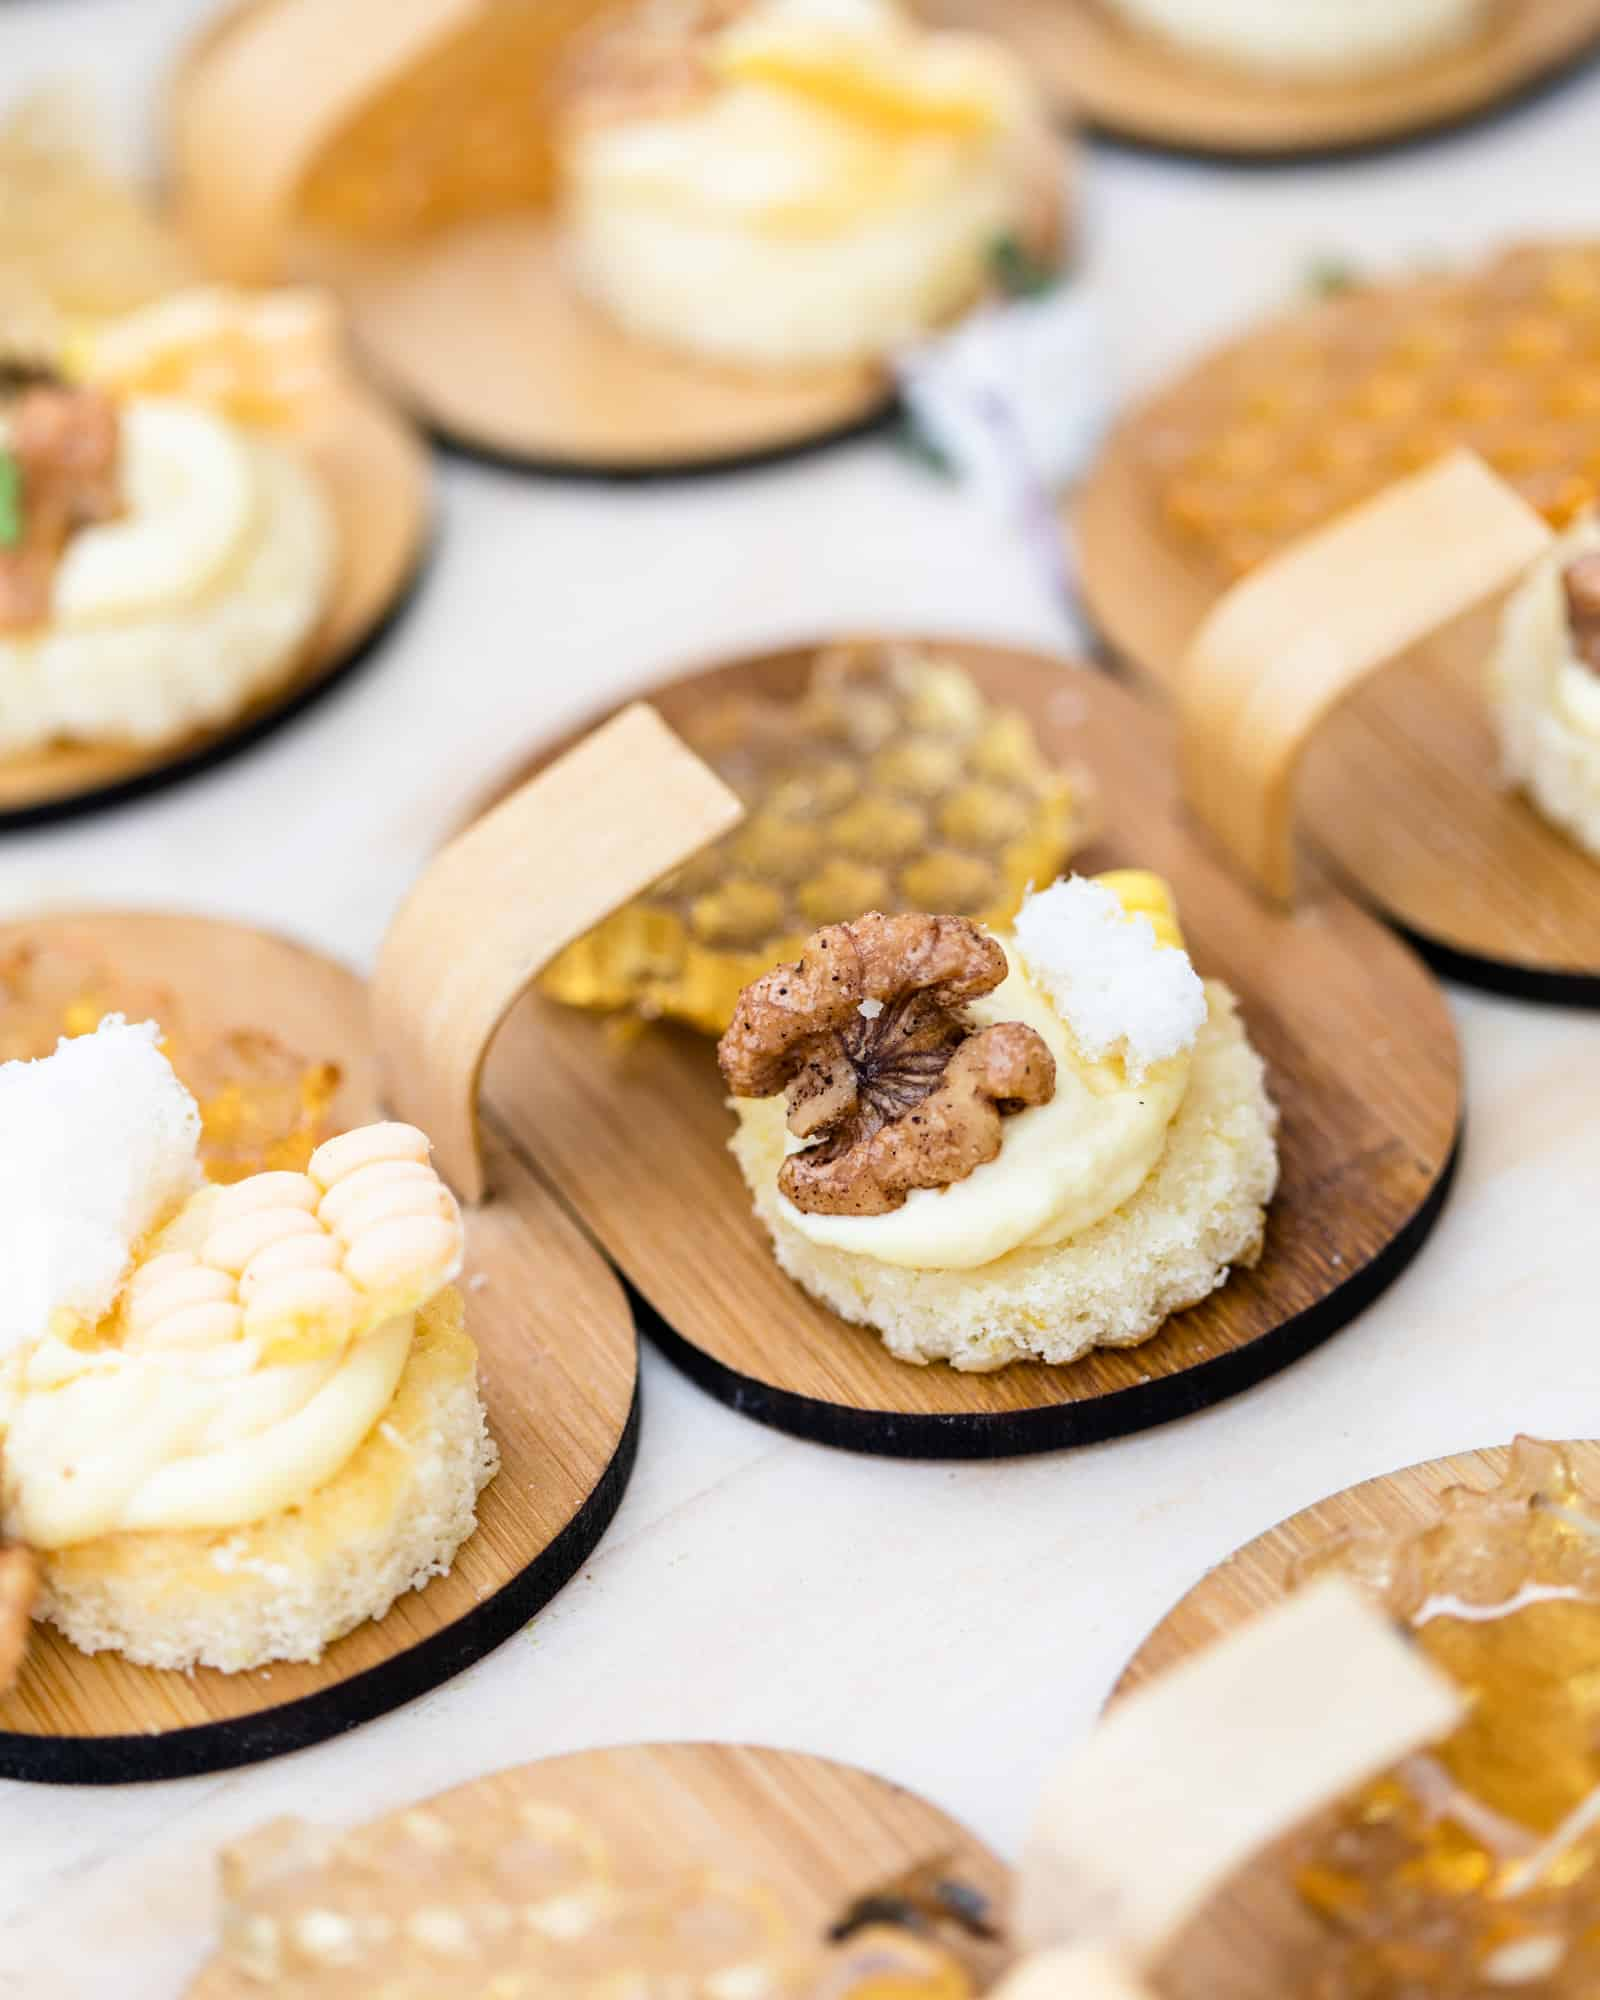 Honeycomb and Corn Panna Cotta bites at a food festival